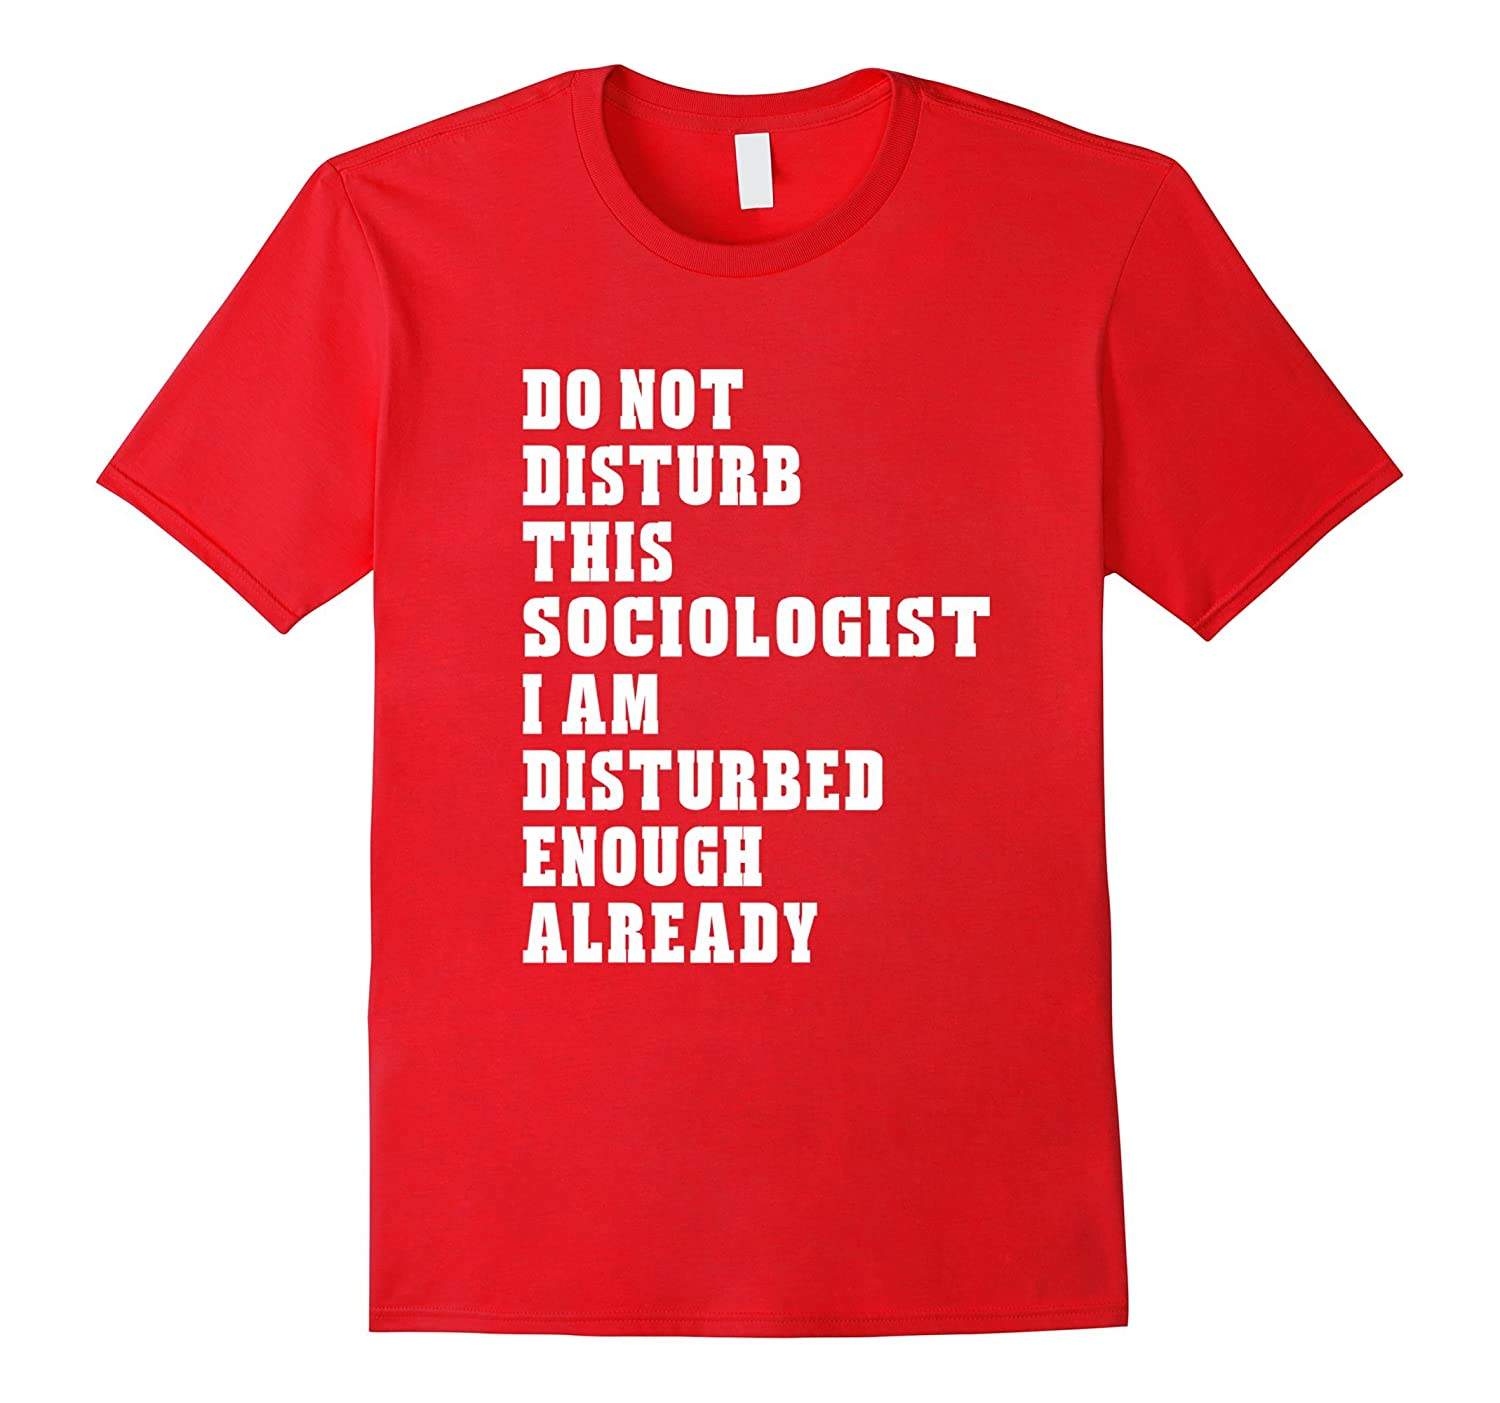 Do Not Disturb This Sociologist - Unisex T-shirt Funny Gifts-FL